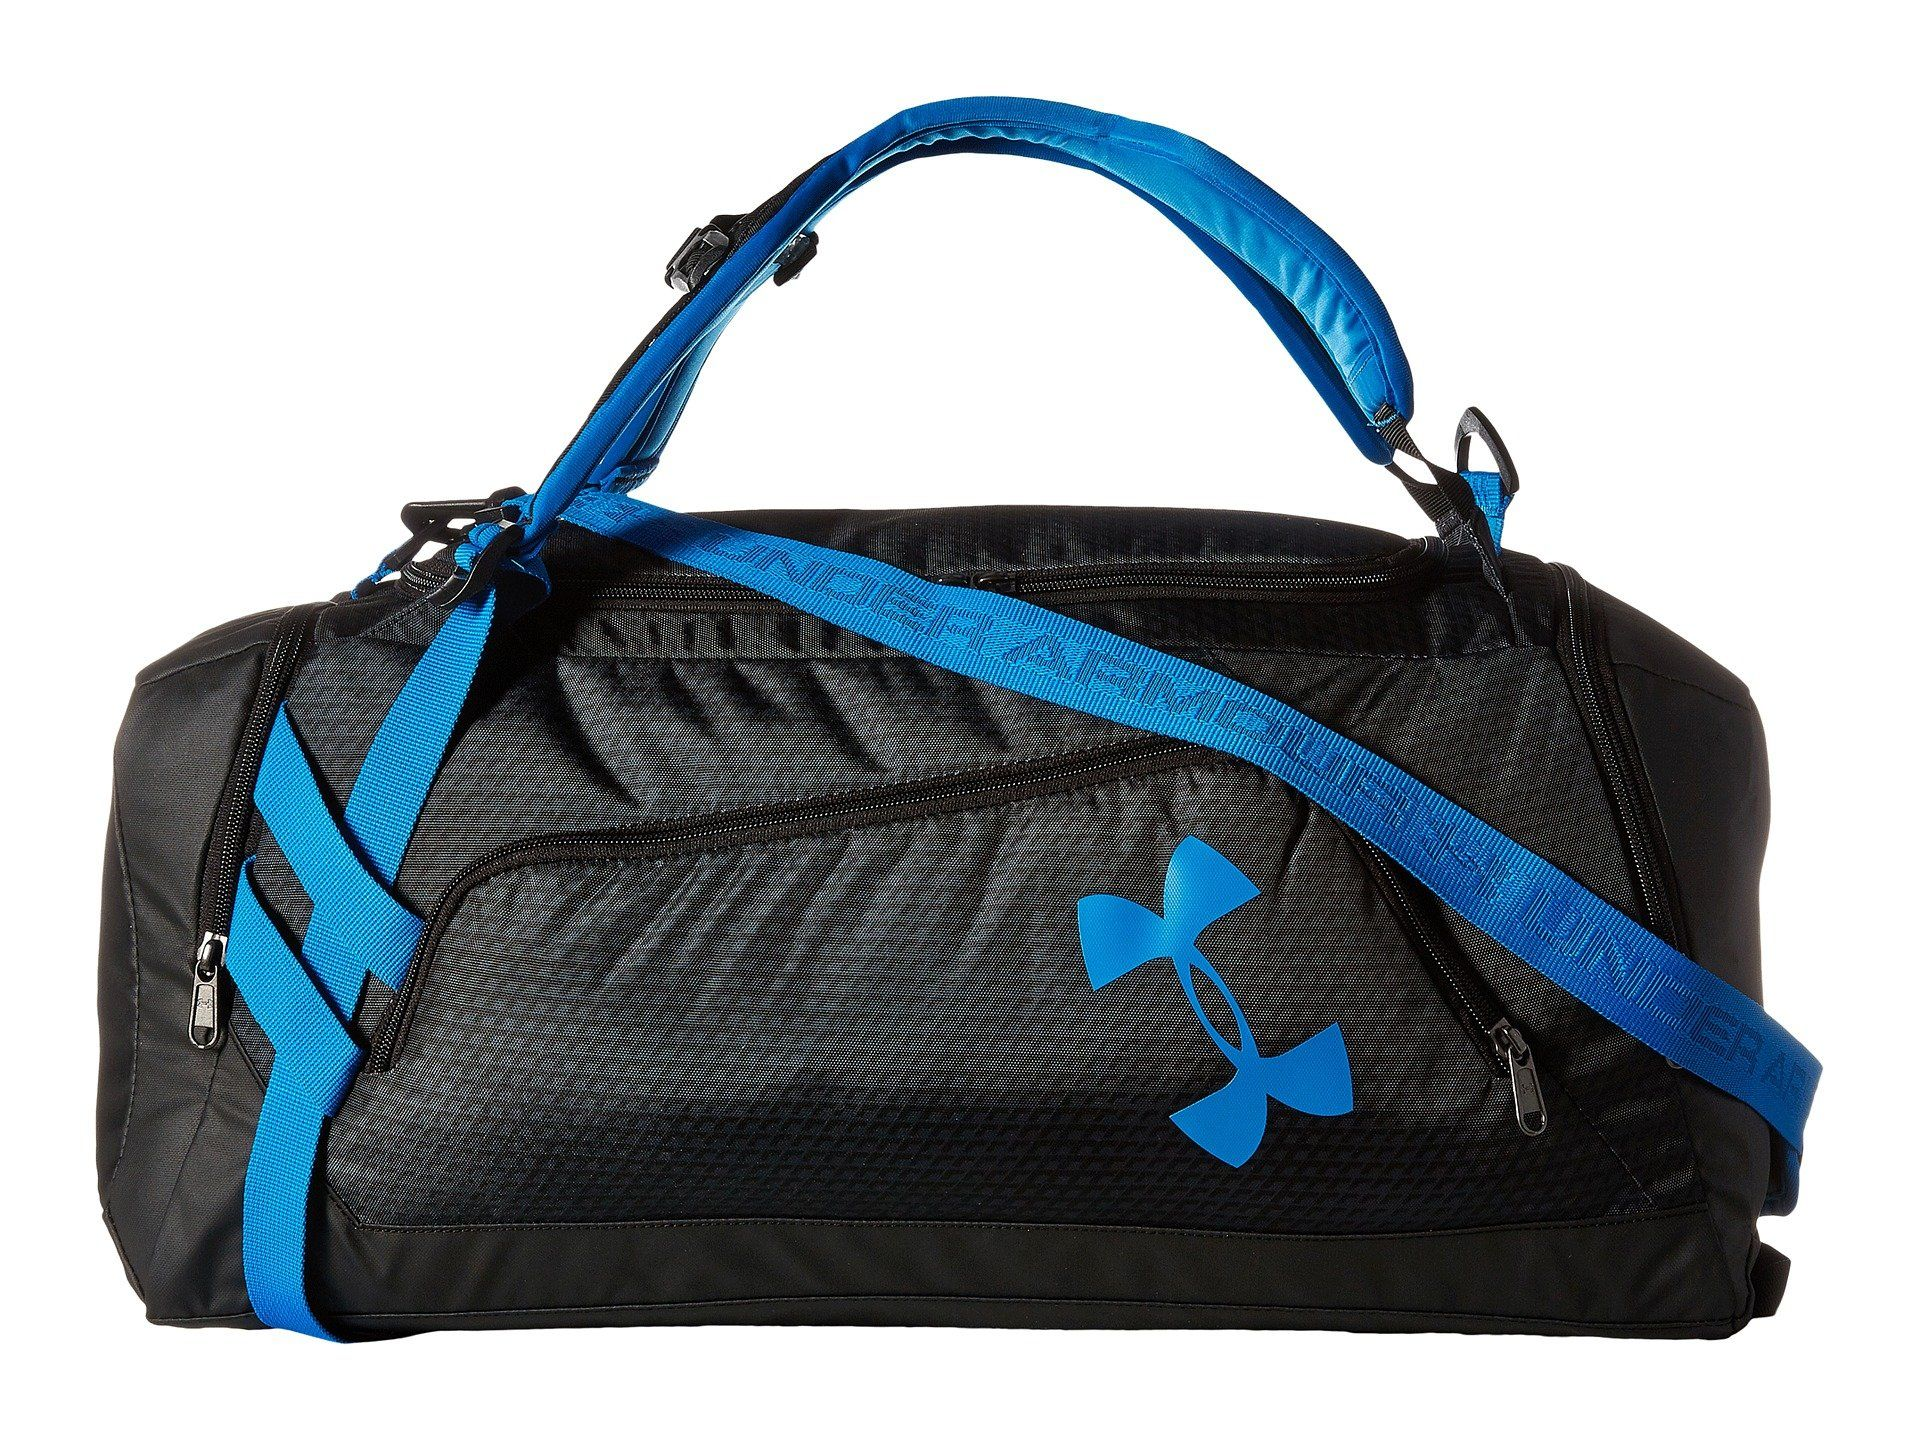 ea4868e3612 UNDER ARMOUR UA Contain Duo Backpack/Duffel. #underarmour #bags #polyester # backpacks #